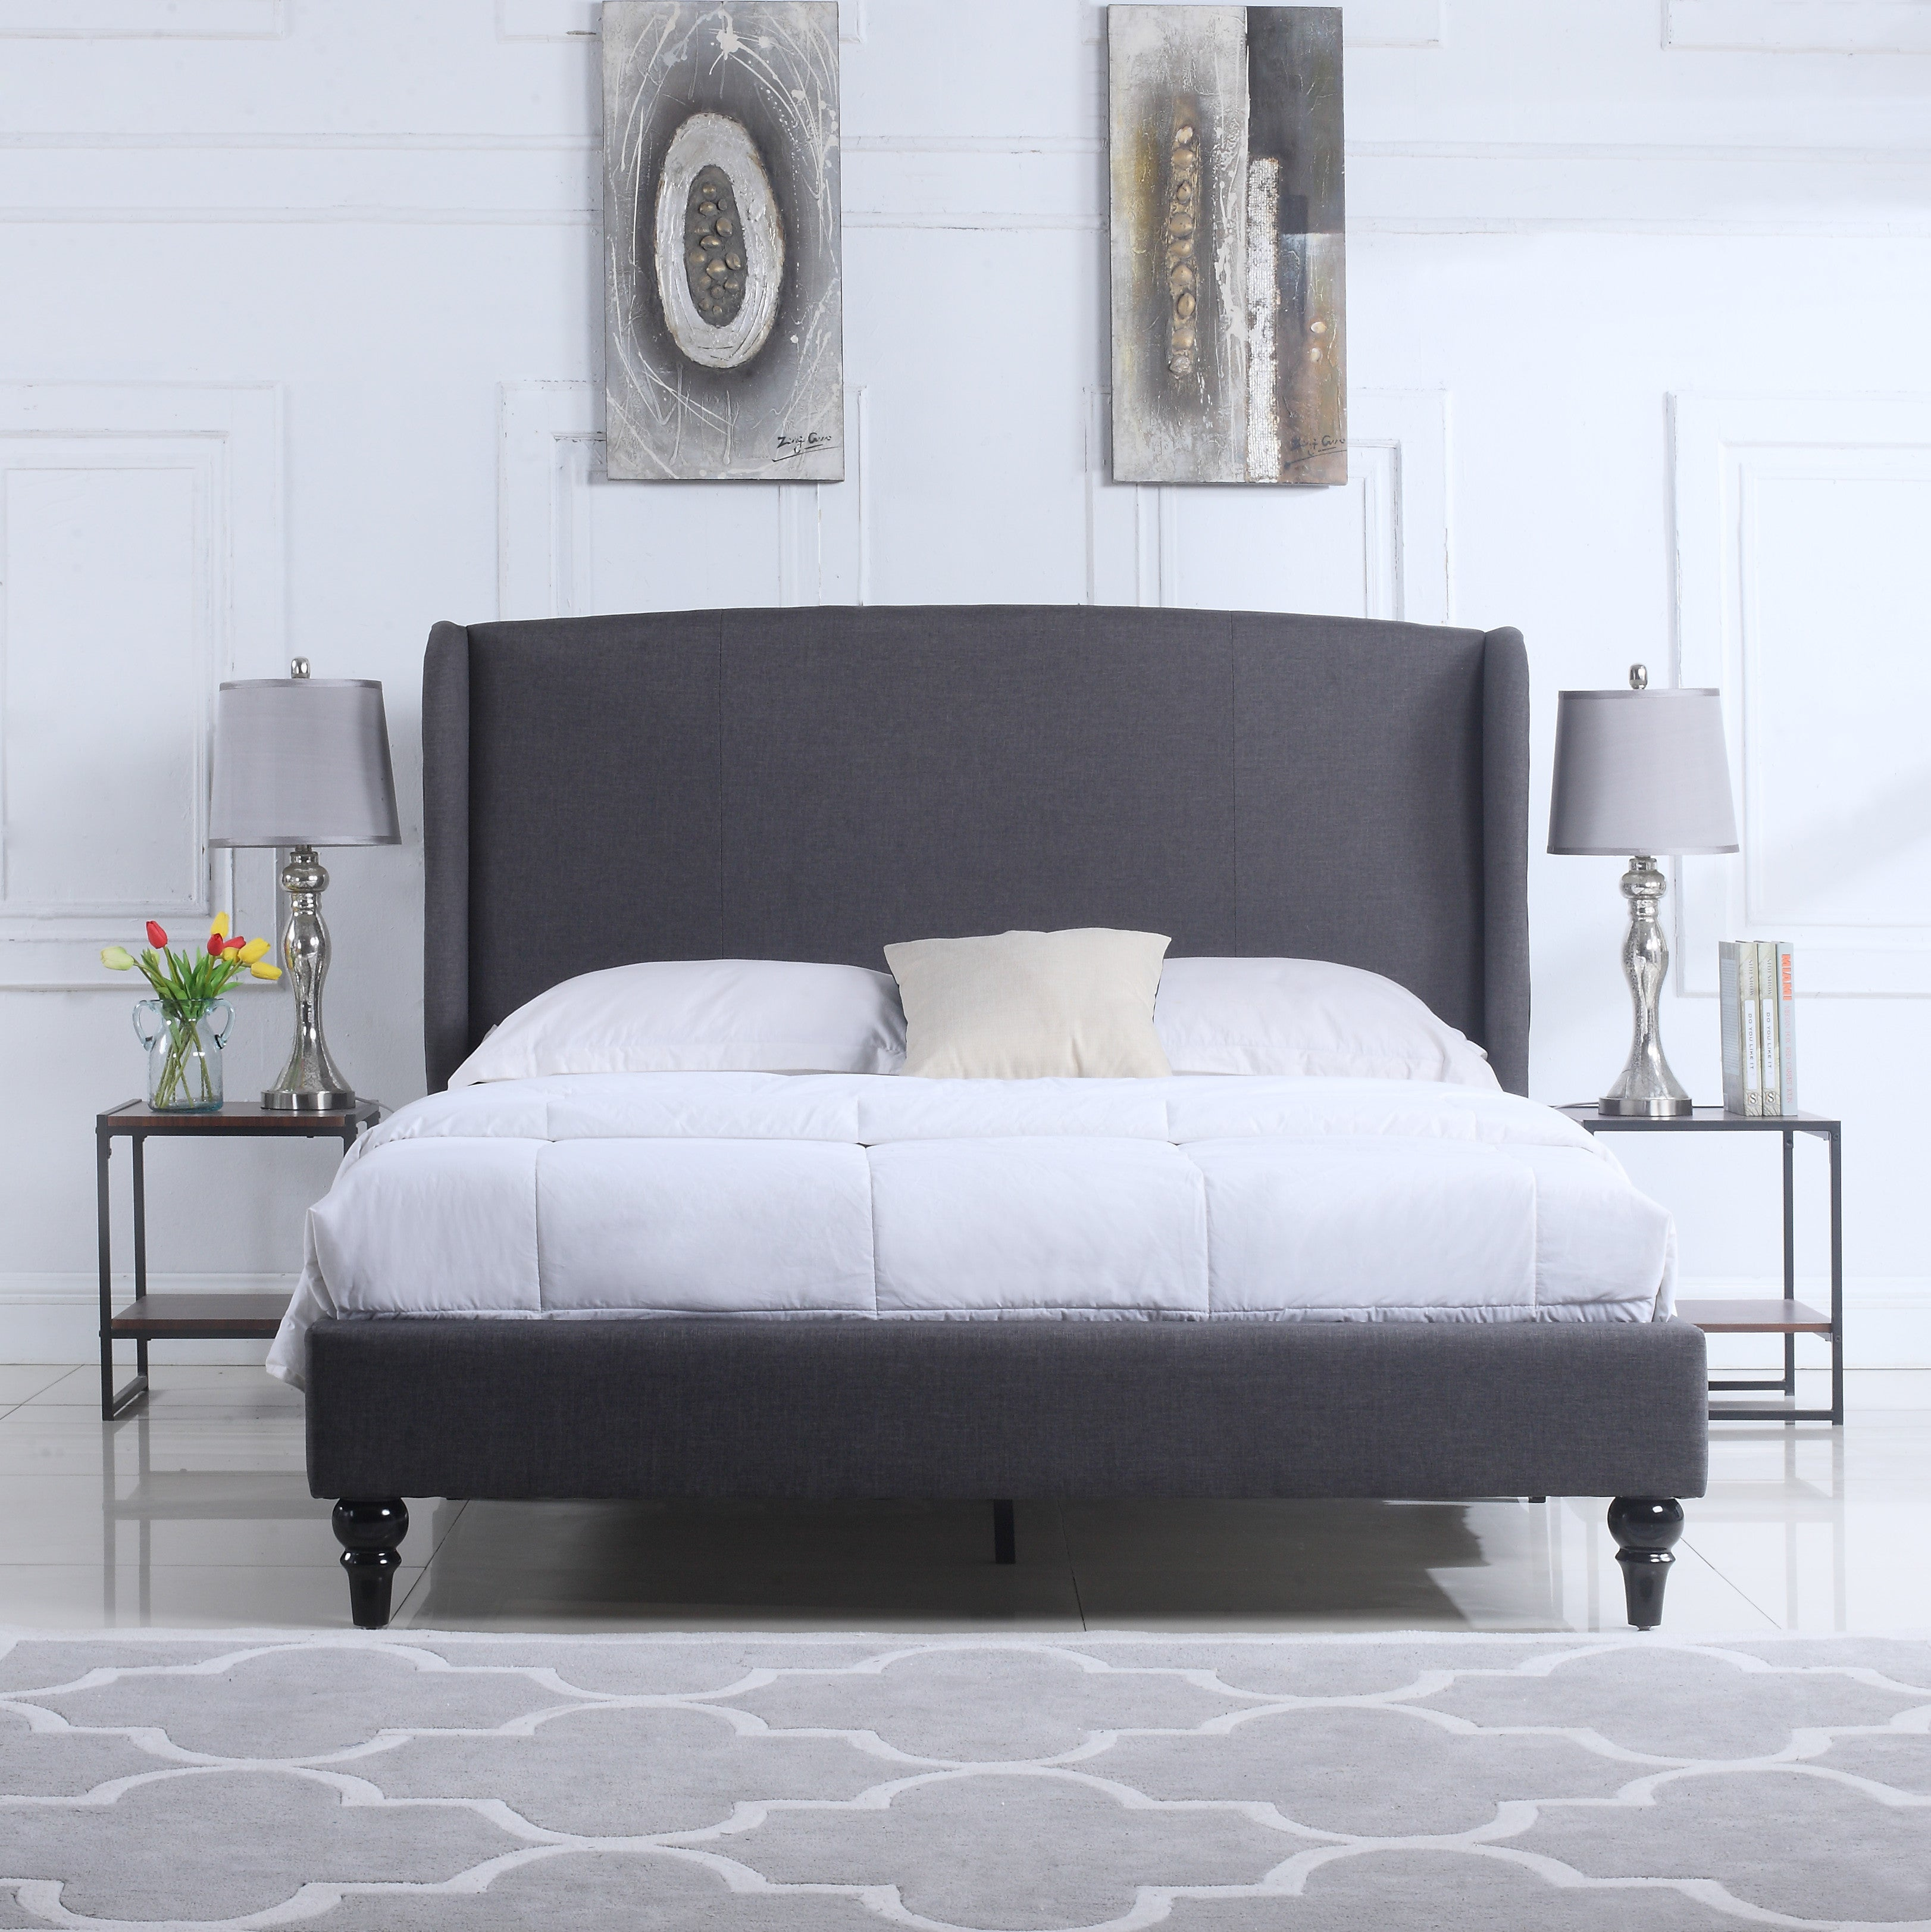 ... Oslo Linen Bed With Upholstered Headboard In Grey Lifestyle Shot ...